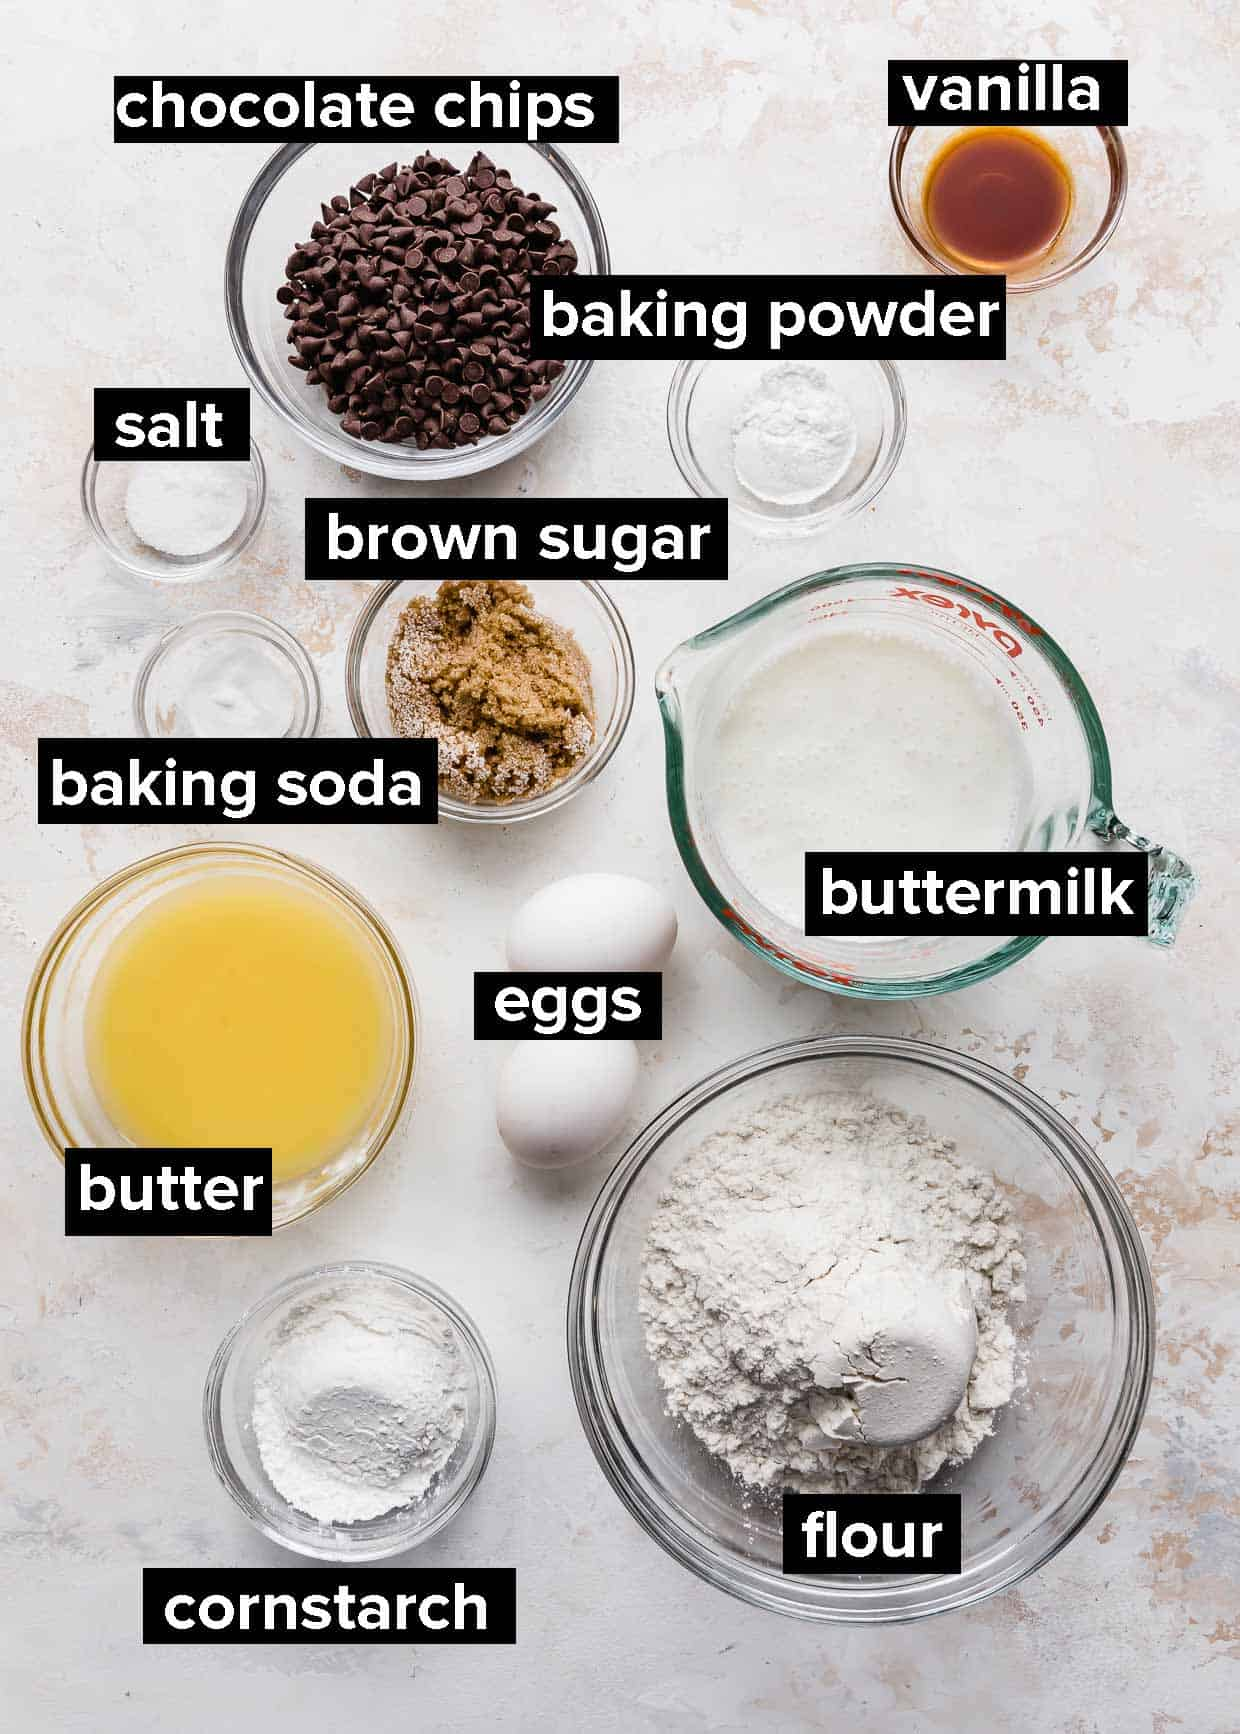 Ingredients used to make chocolate chip waffles.